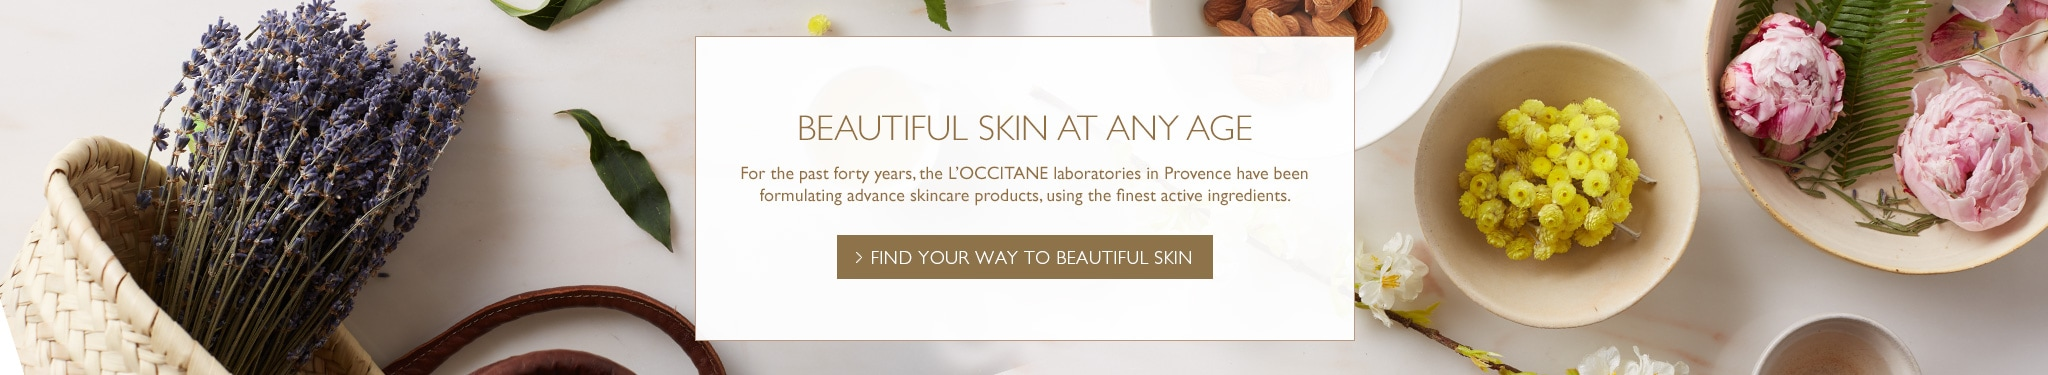 Discover Beautiful Skin At Any Age